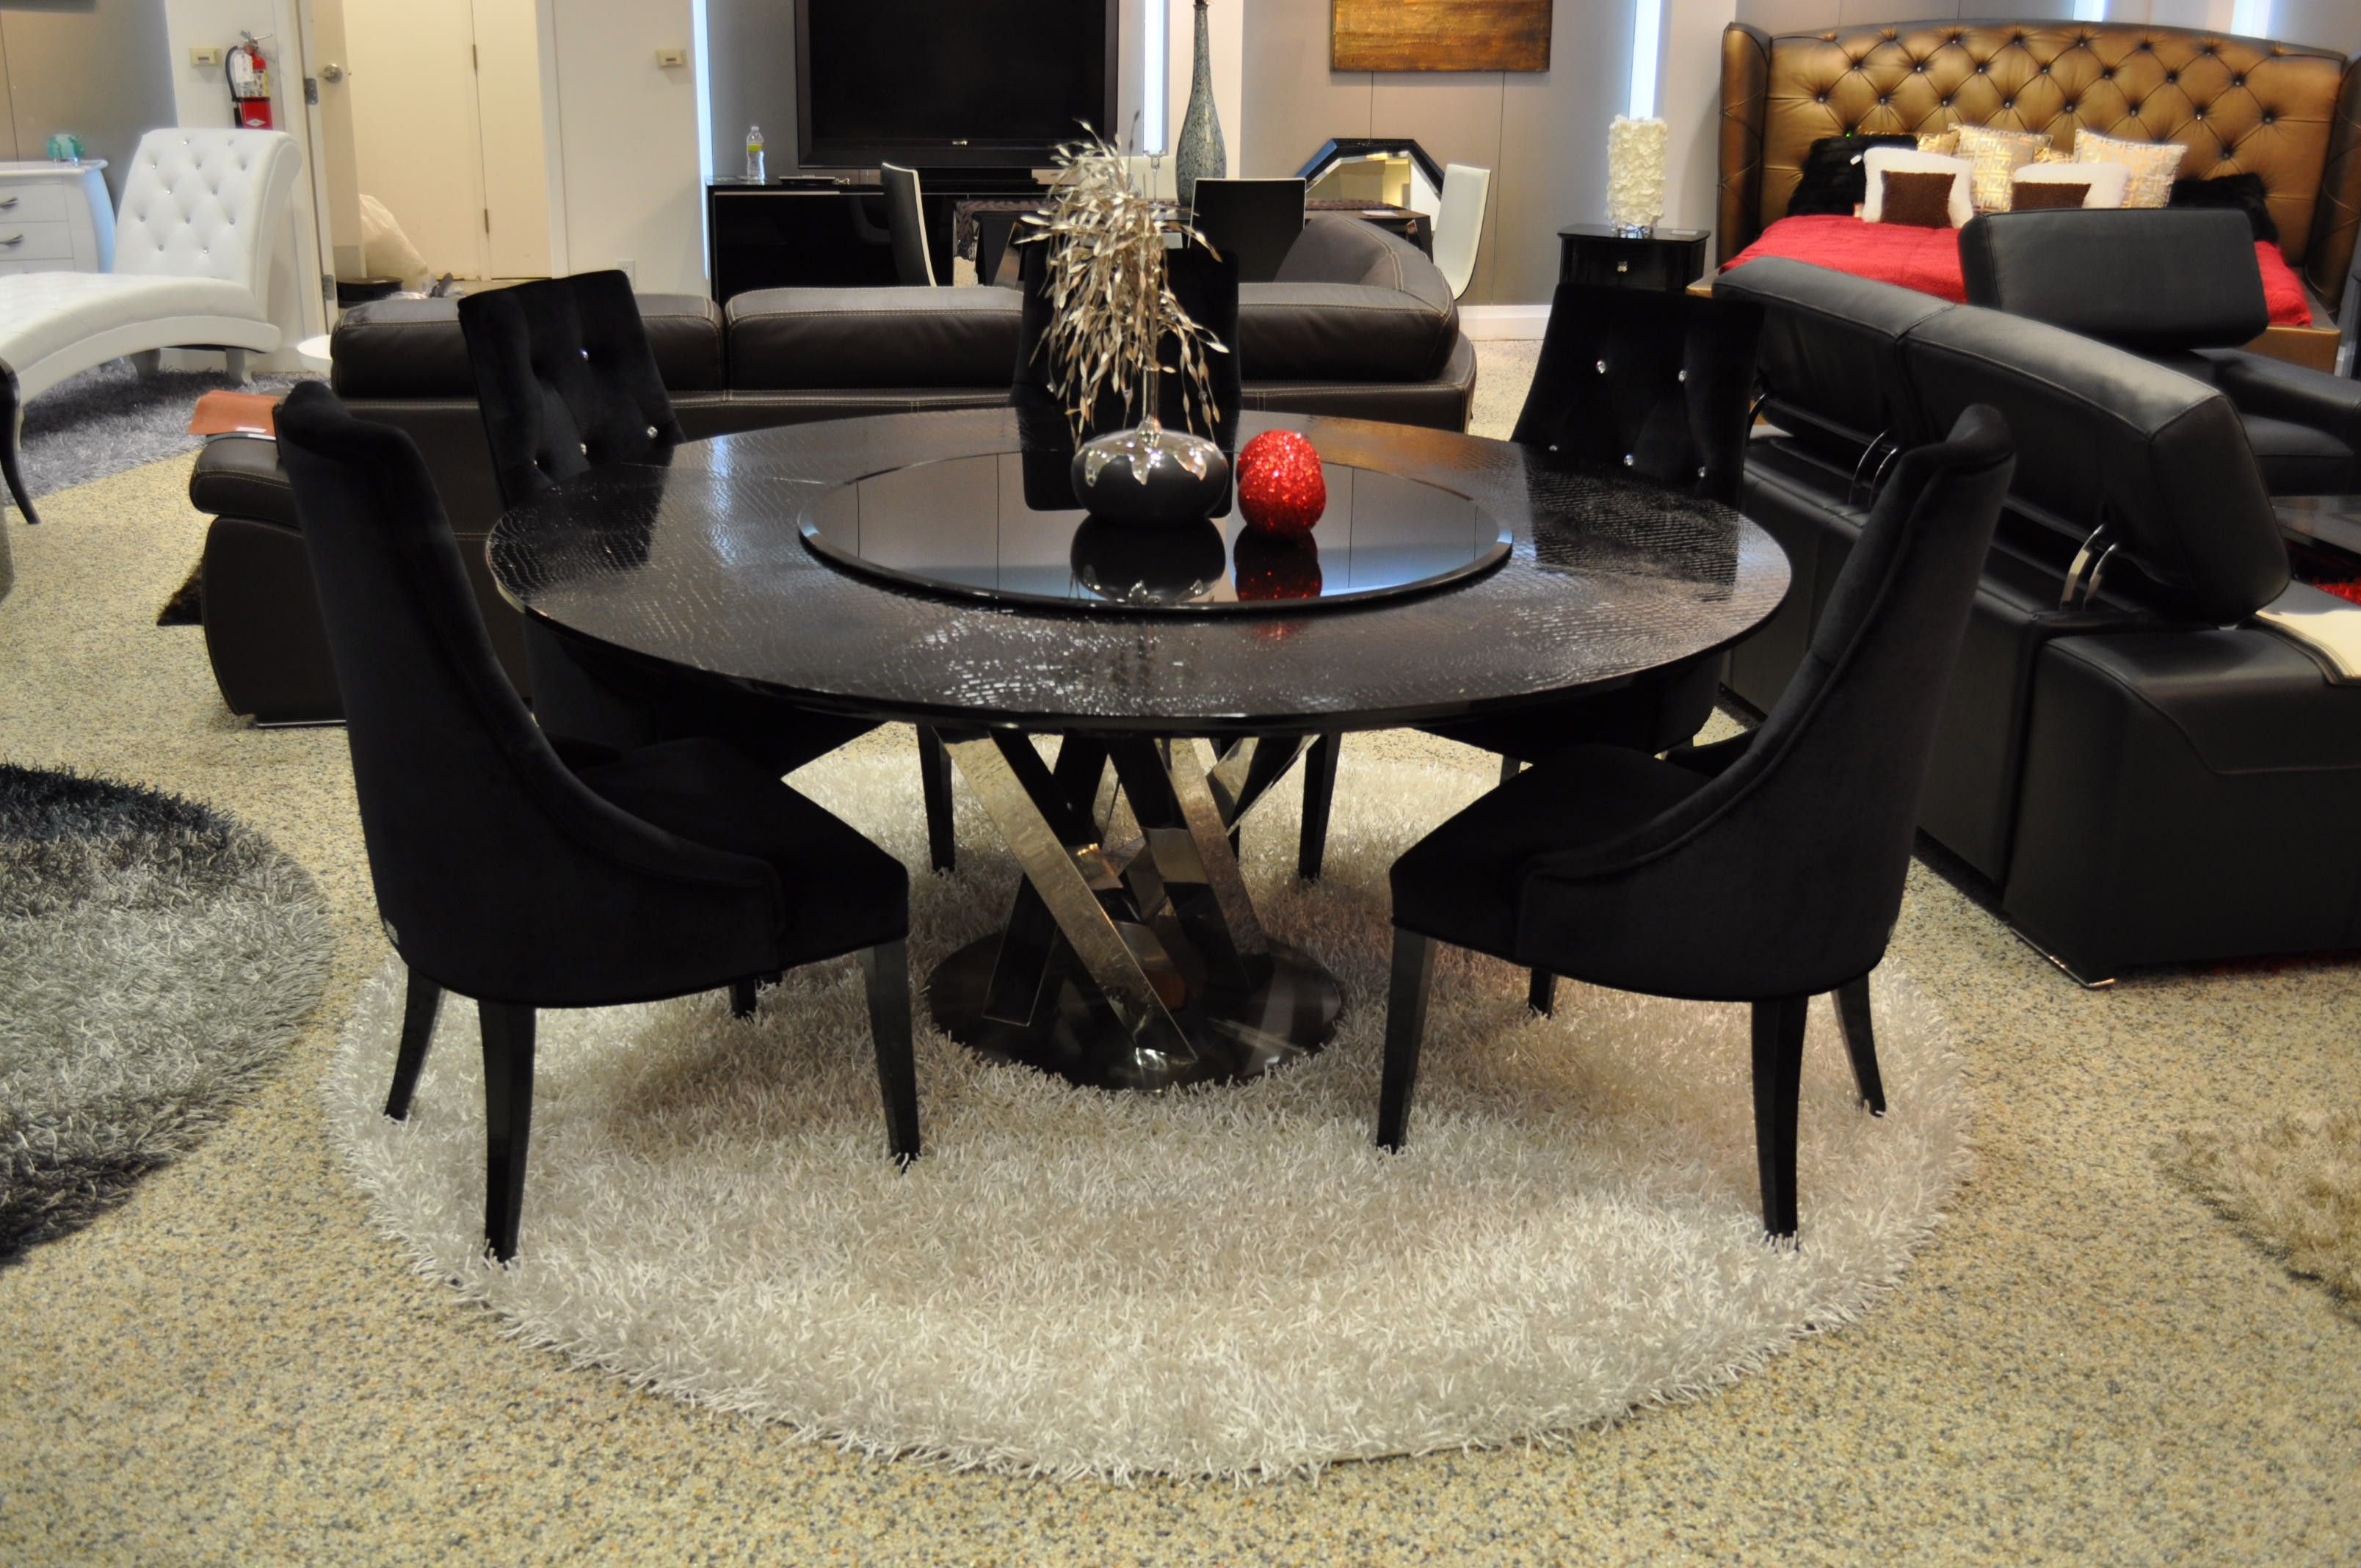 espresso-round-dining-table-inspiration-dining-room-astonishing-black-round-dining-table-for-6-marble-top-with-black